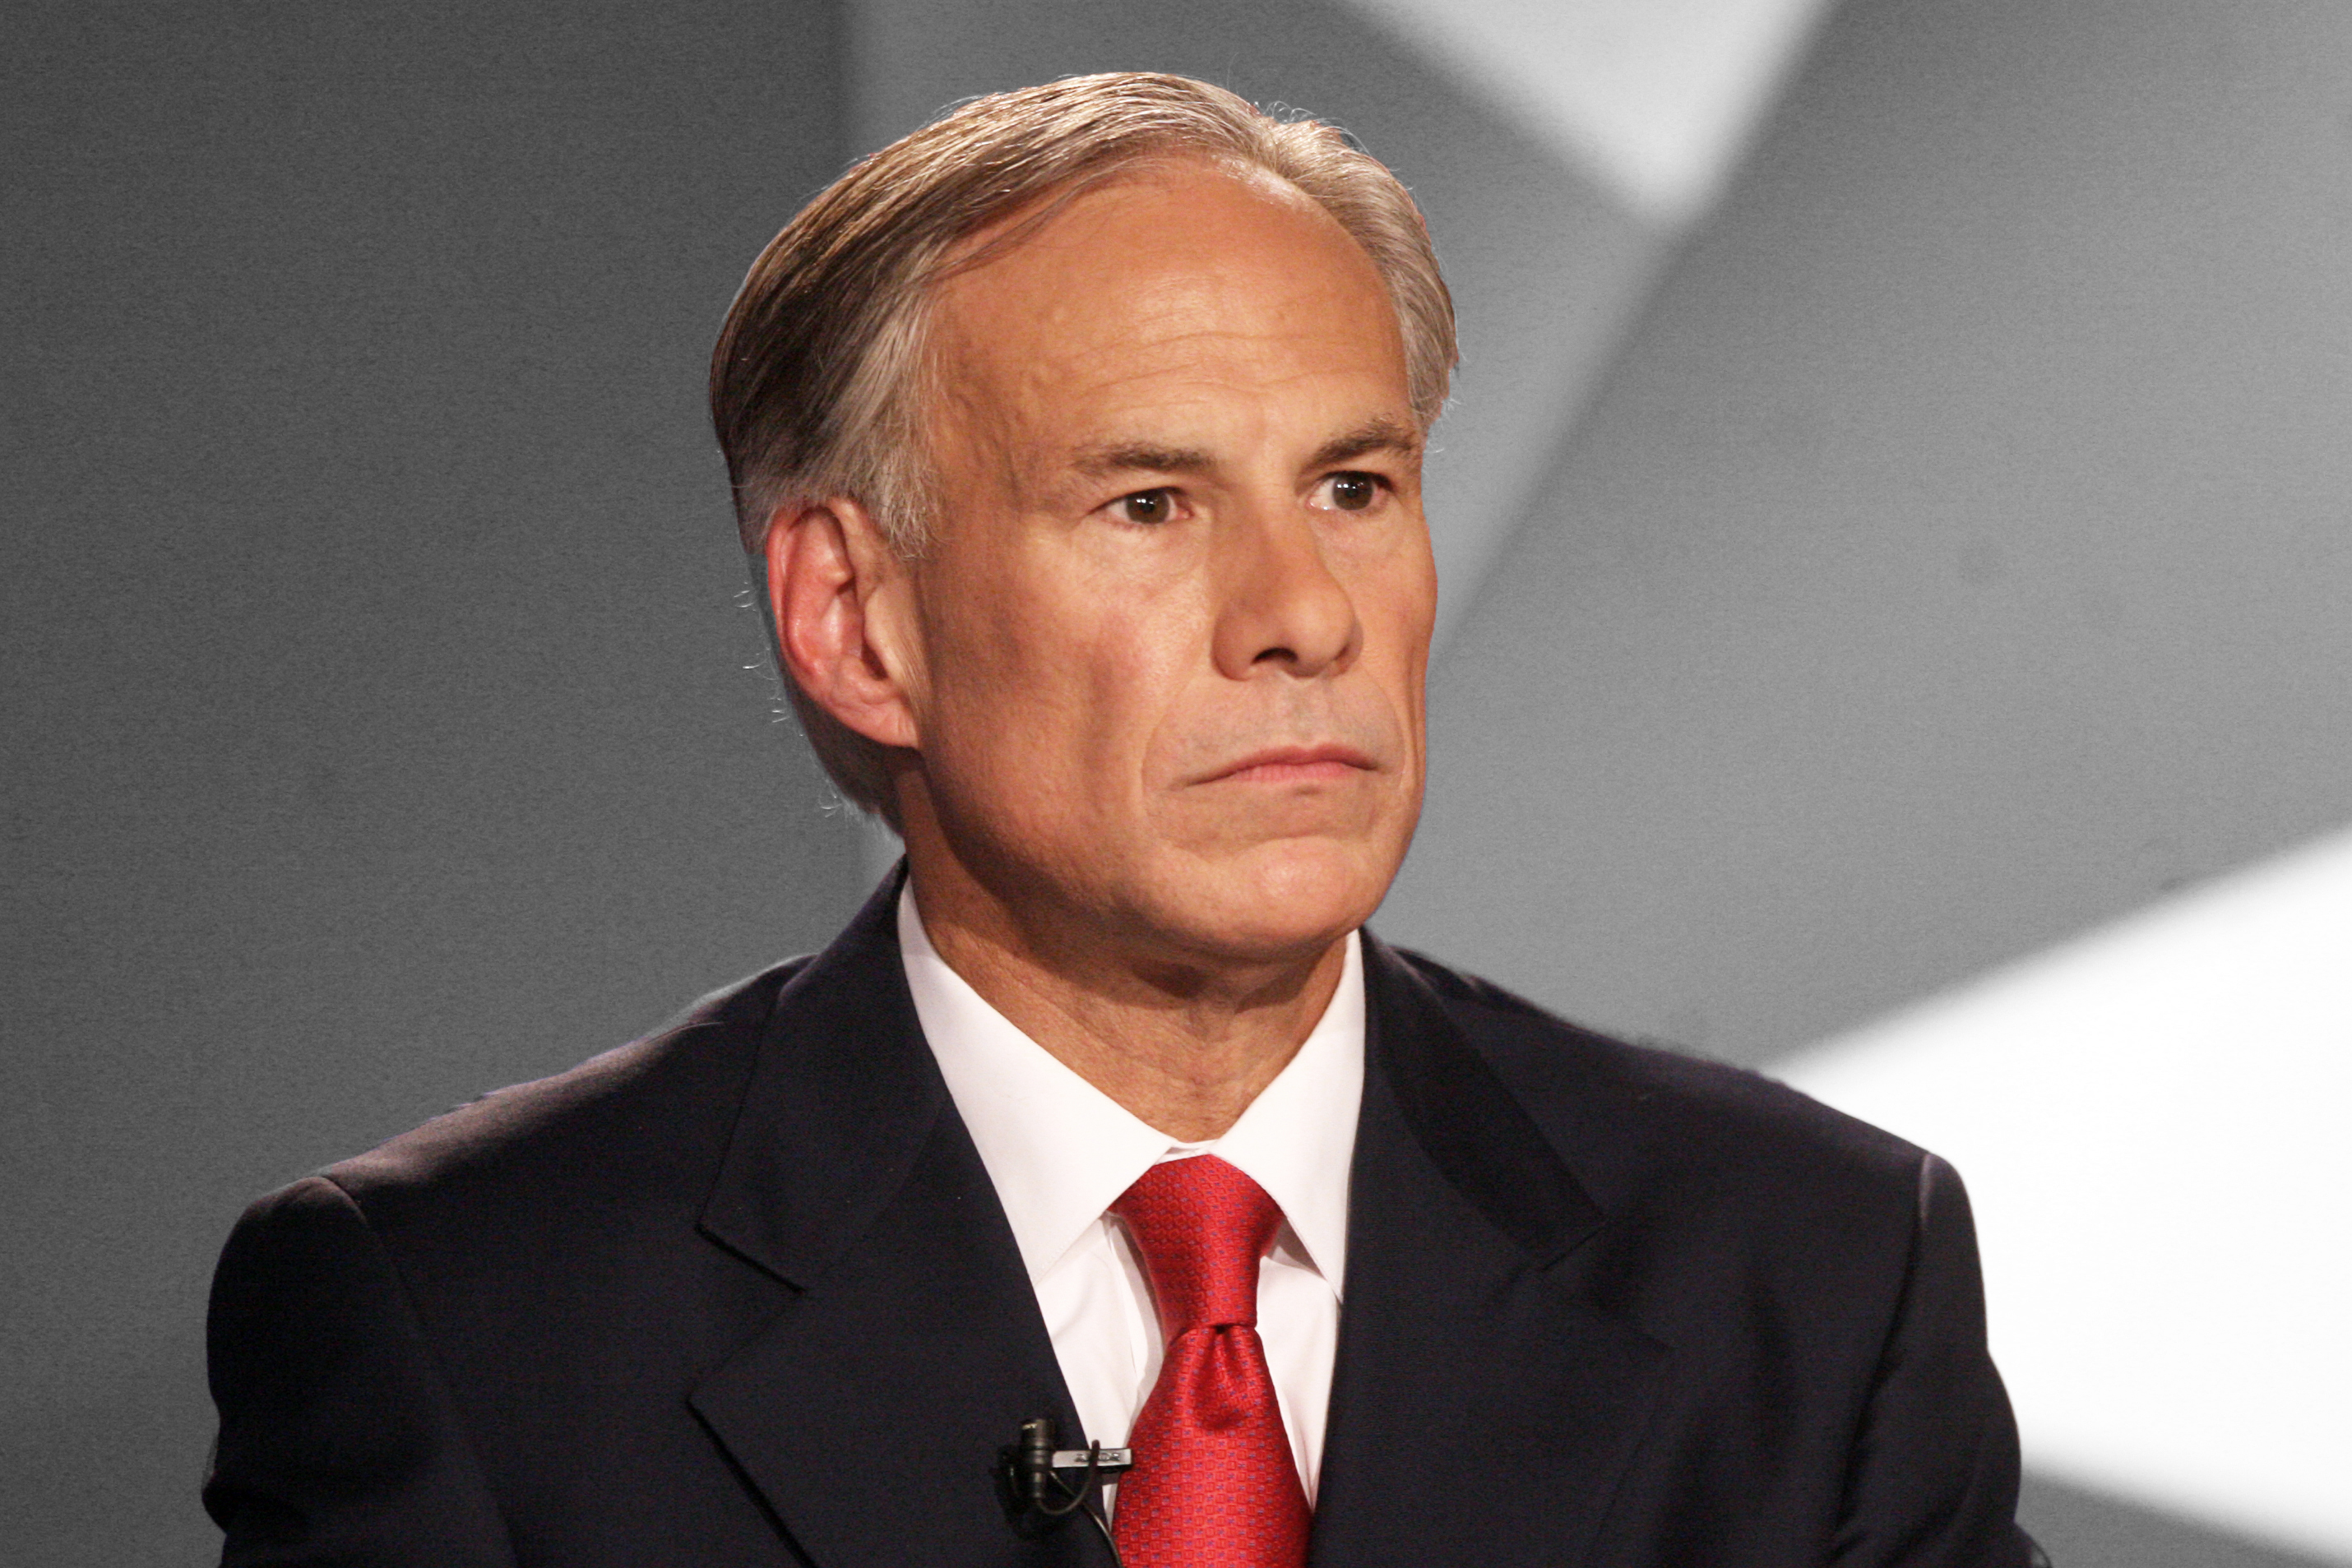 Greg Abbott:                                As head of the biggest, reddest state, the Texas Governor has a bully pulpit and he's using it. He led the way among GOP governors rejecting Syrian refugees in their states and fought President Obama's immigration actions in court.